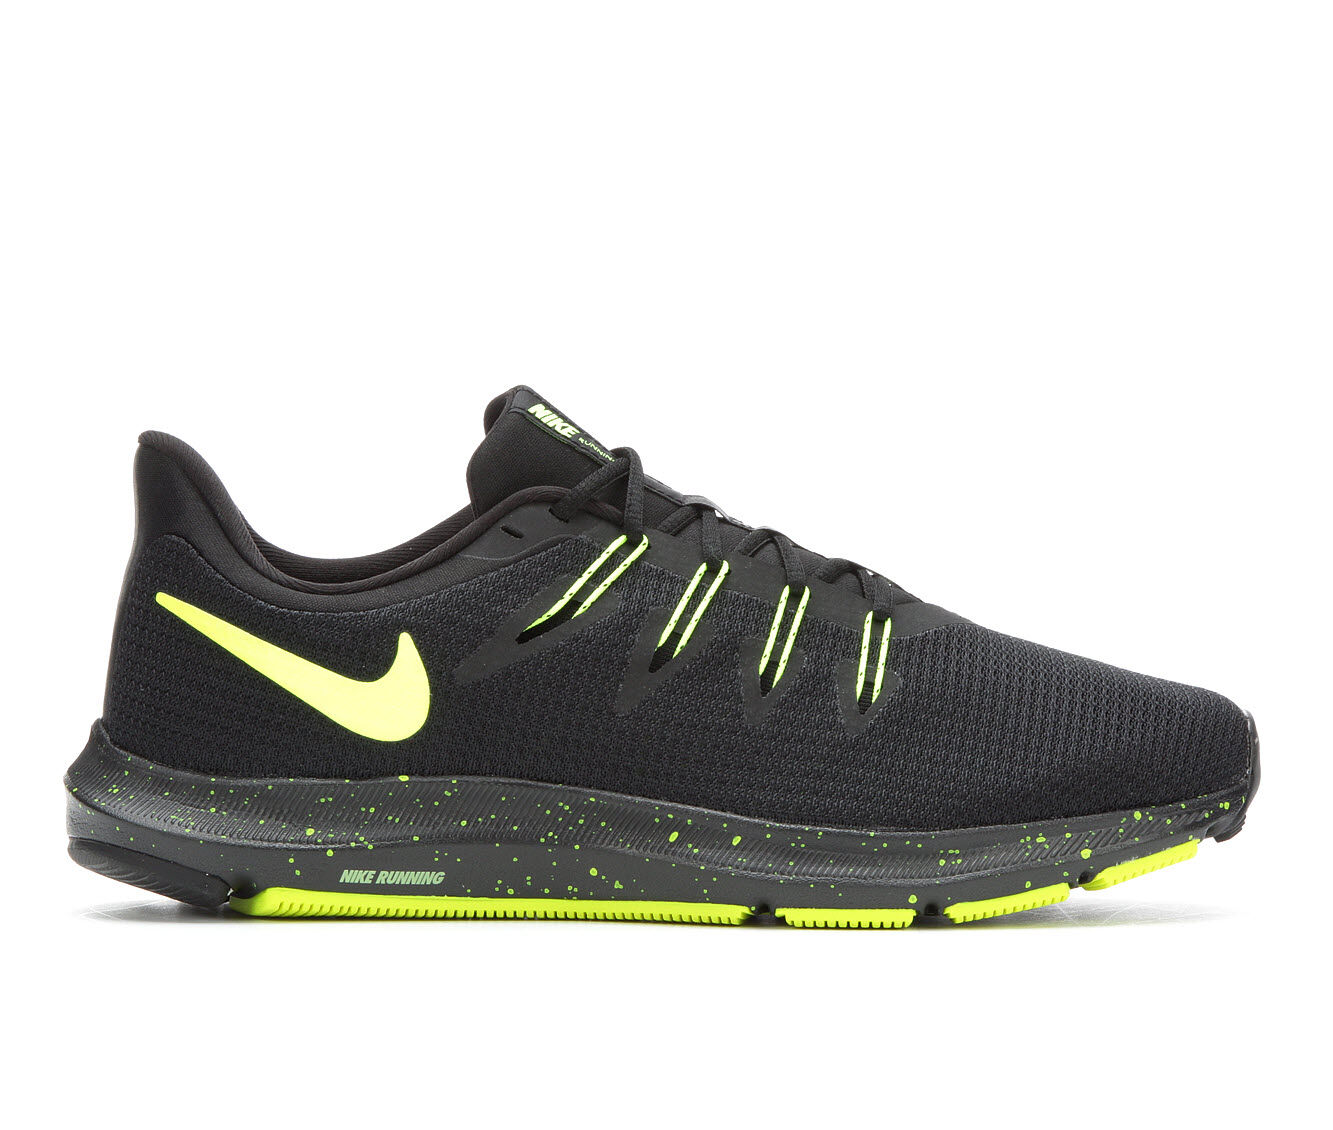 Men's Nike Quest Running Shoes Blk/Vlt 002